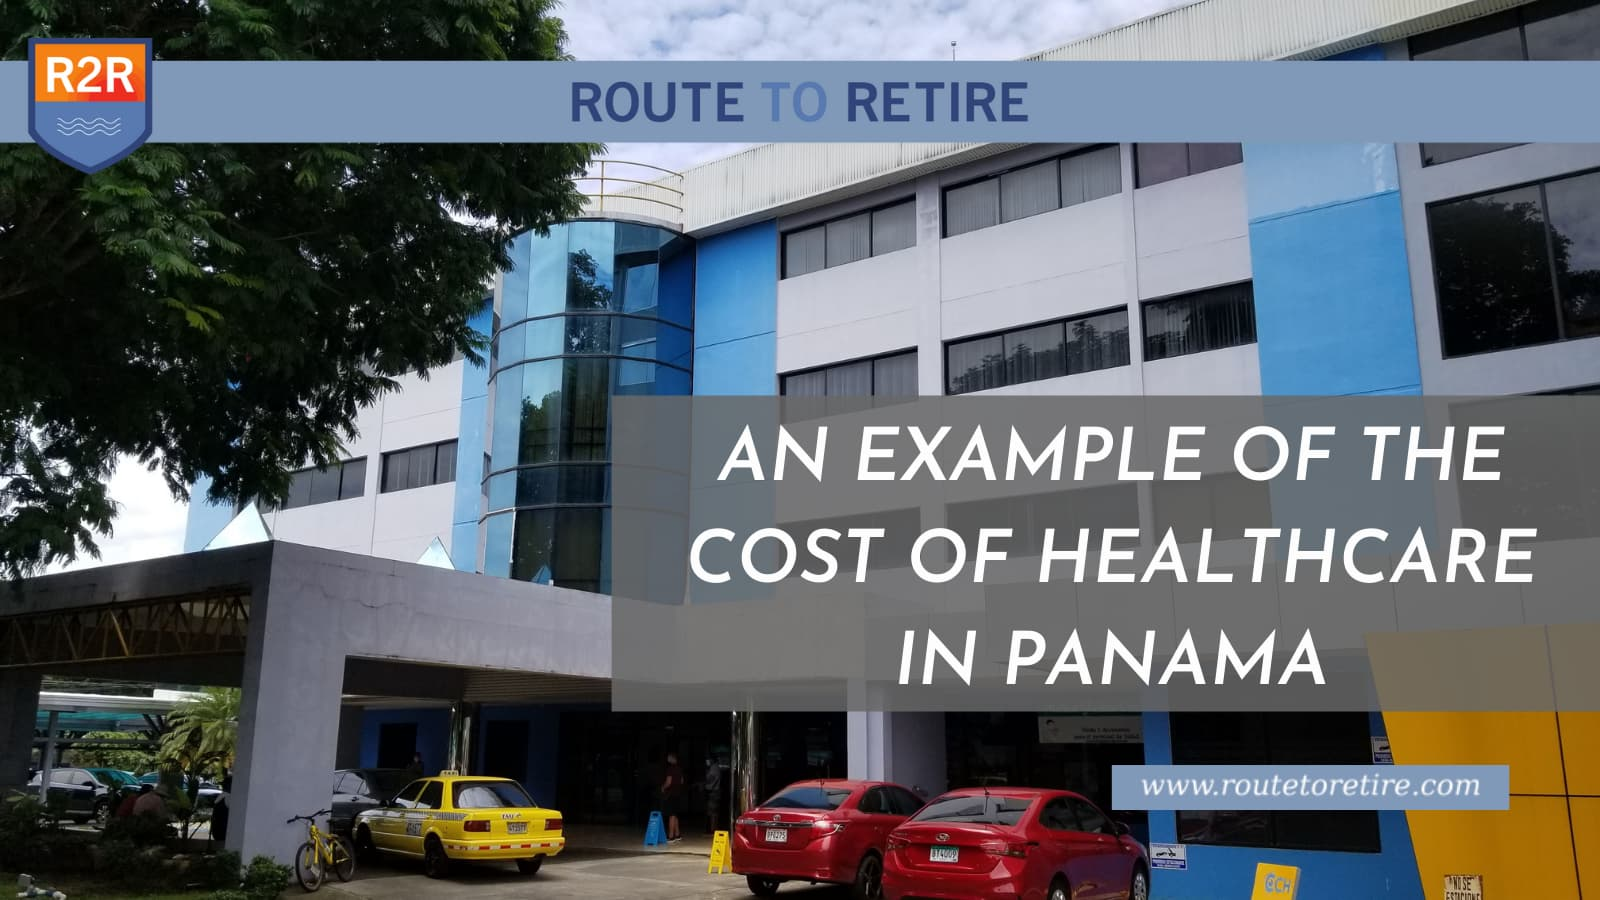 An Example of the Cost of Healthcare in Panama